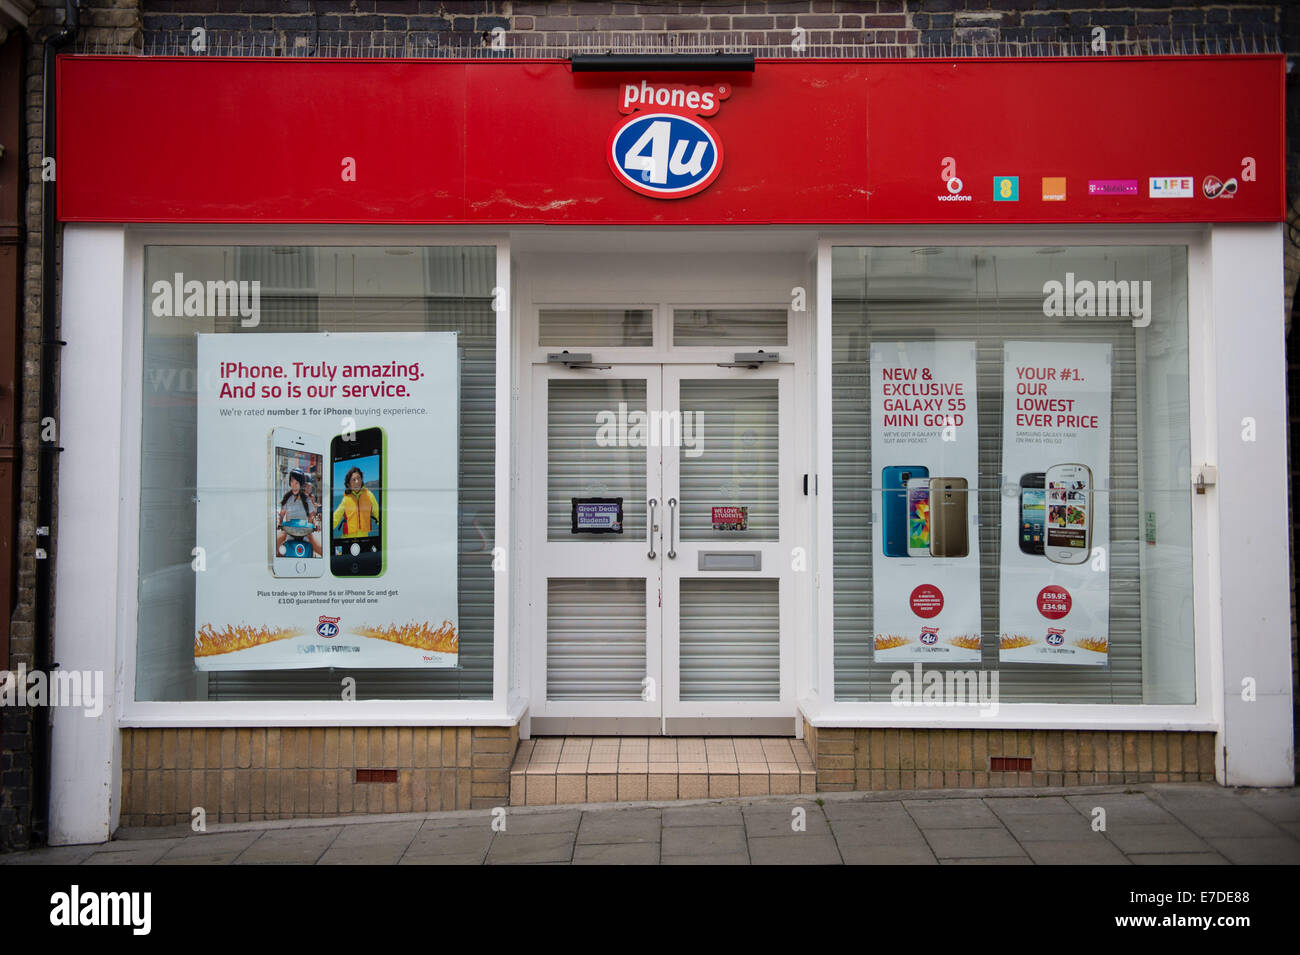 Aberystwyth, Wales, UK. 15th Sept, 2014. All 550 branches of UK mobile phone retailer Phones4U are closed this morning - Stock Image